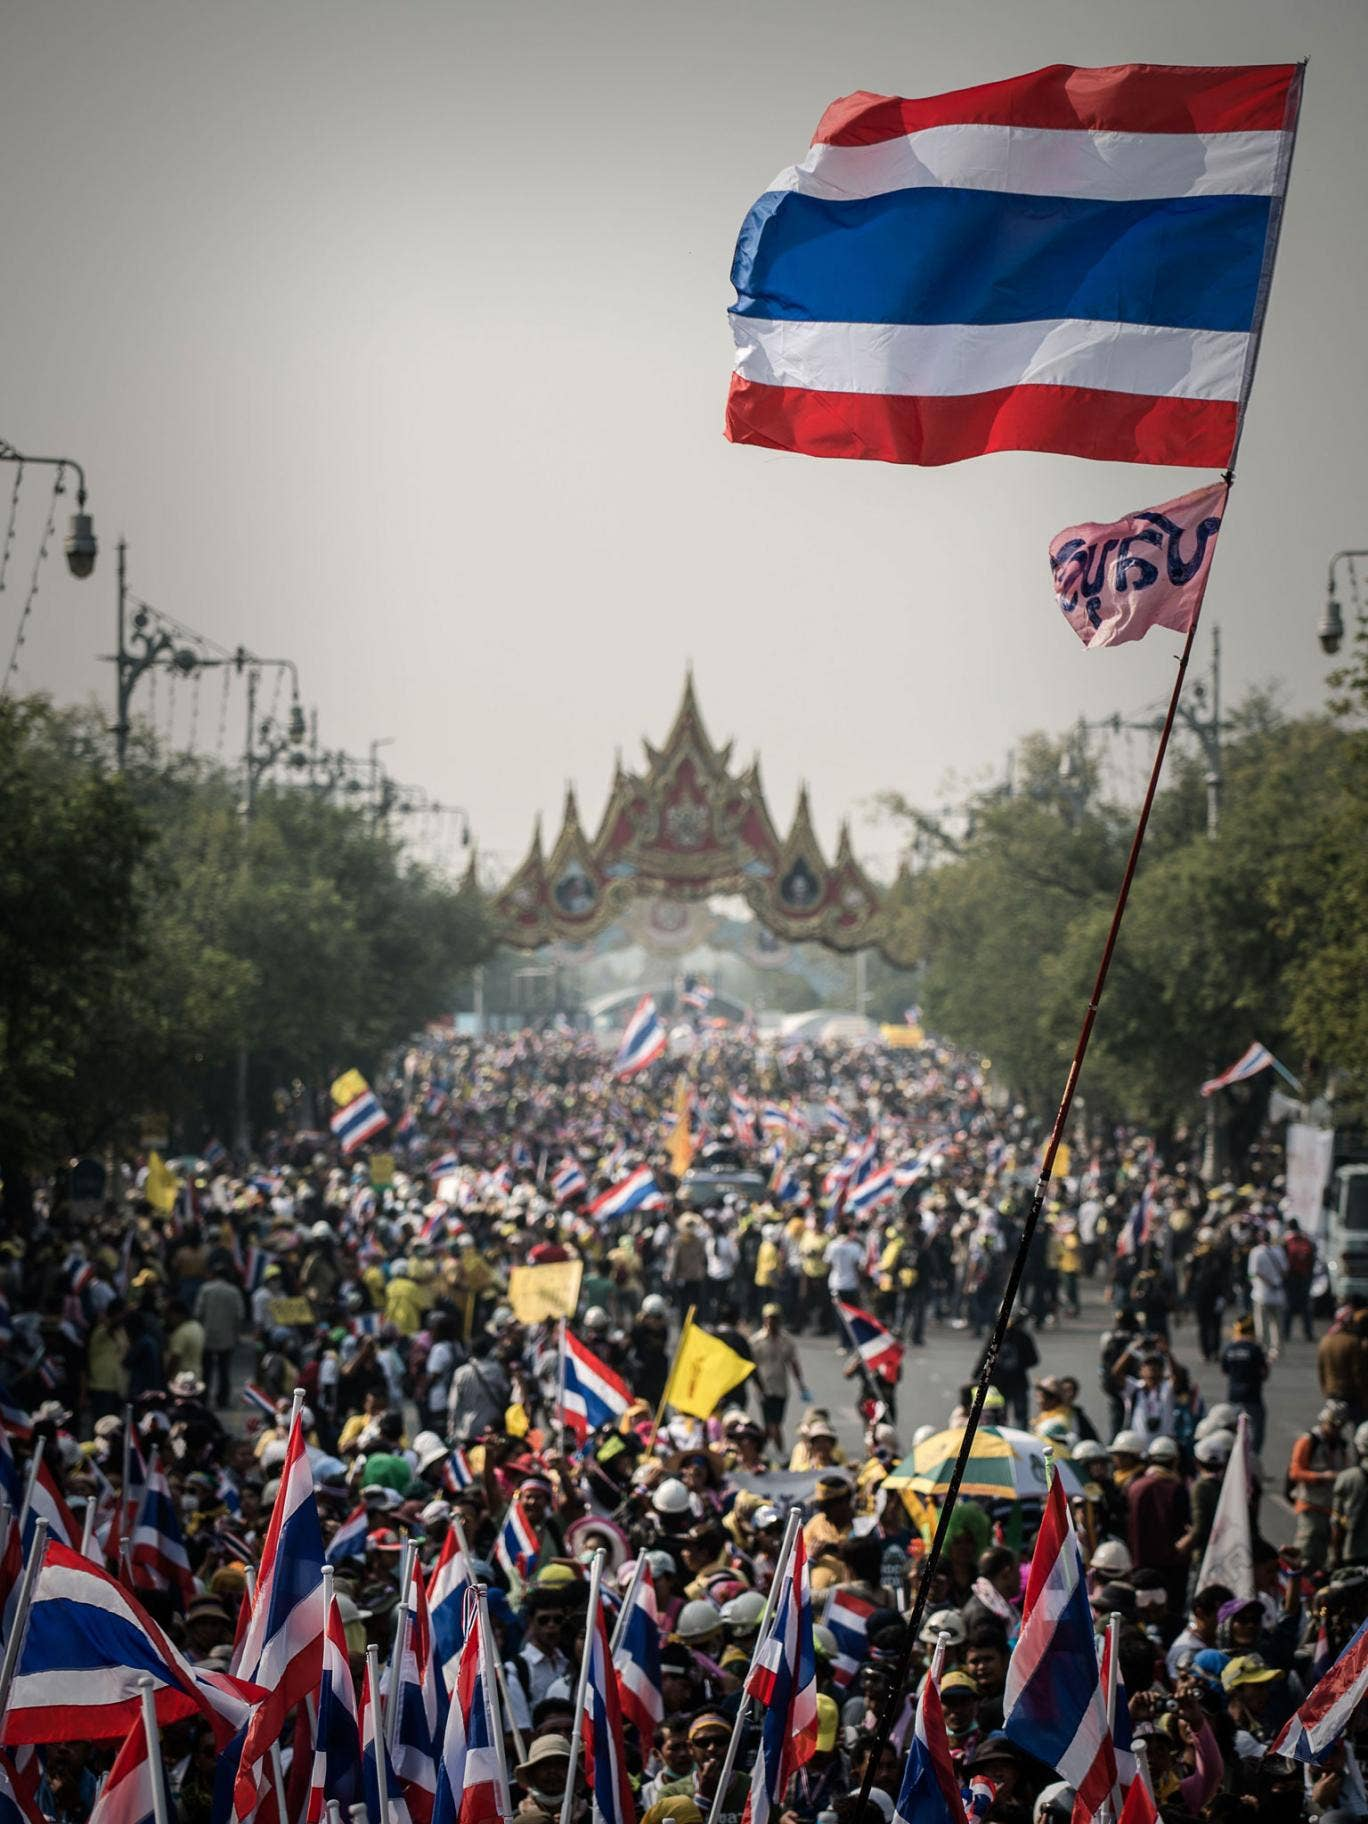 Demonstrators marching towards Government House in Bangkok; an estimated 100,000 protesters flooded the streets